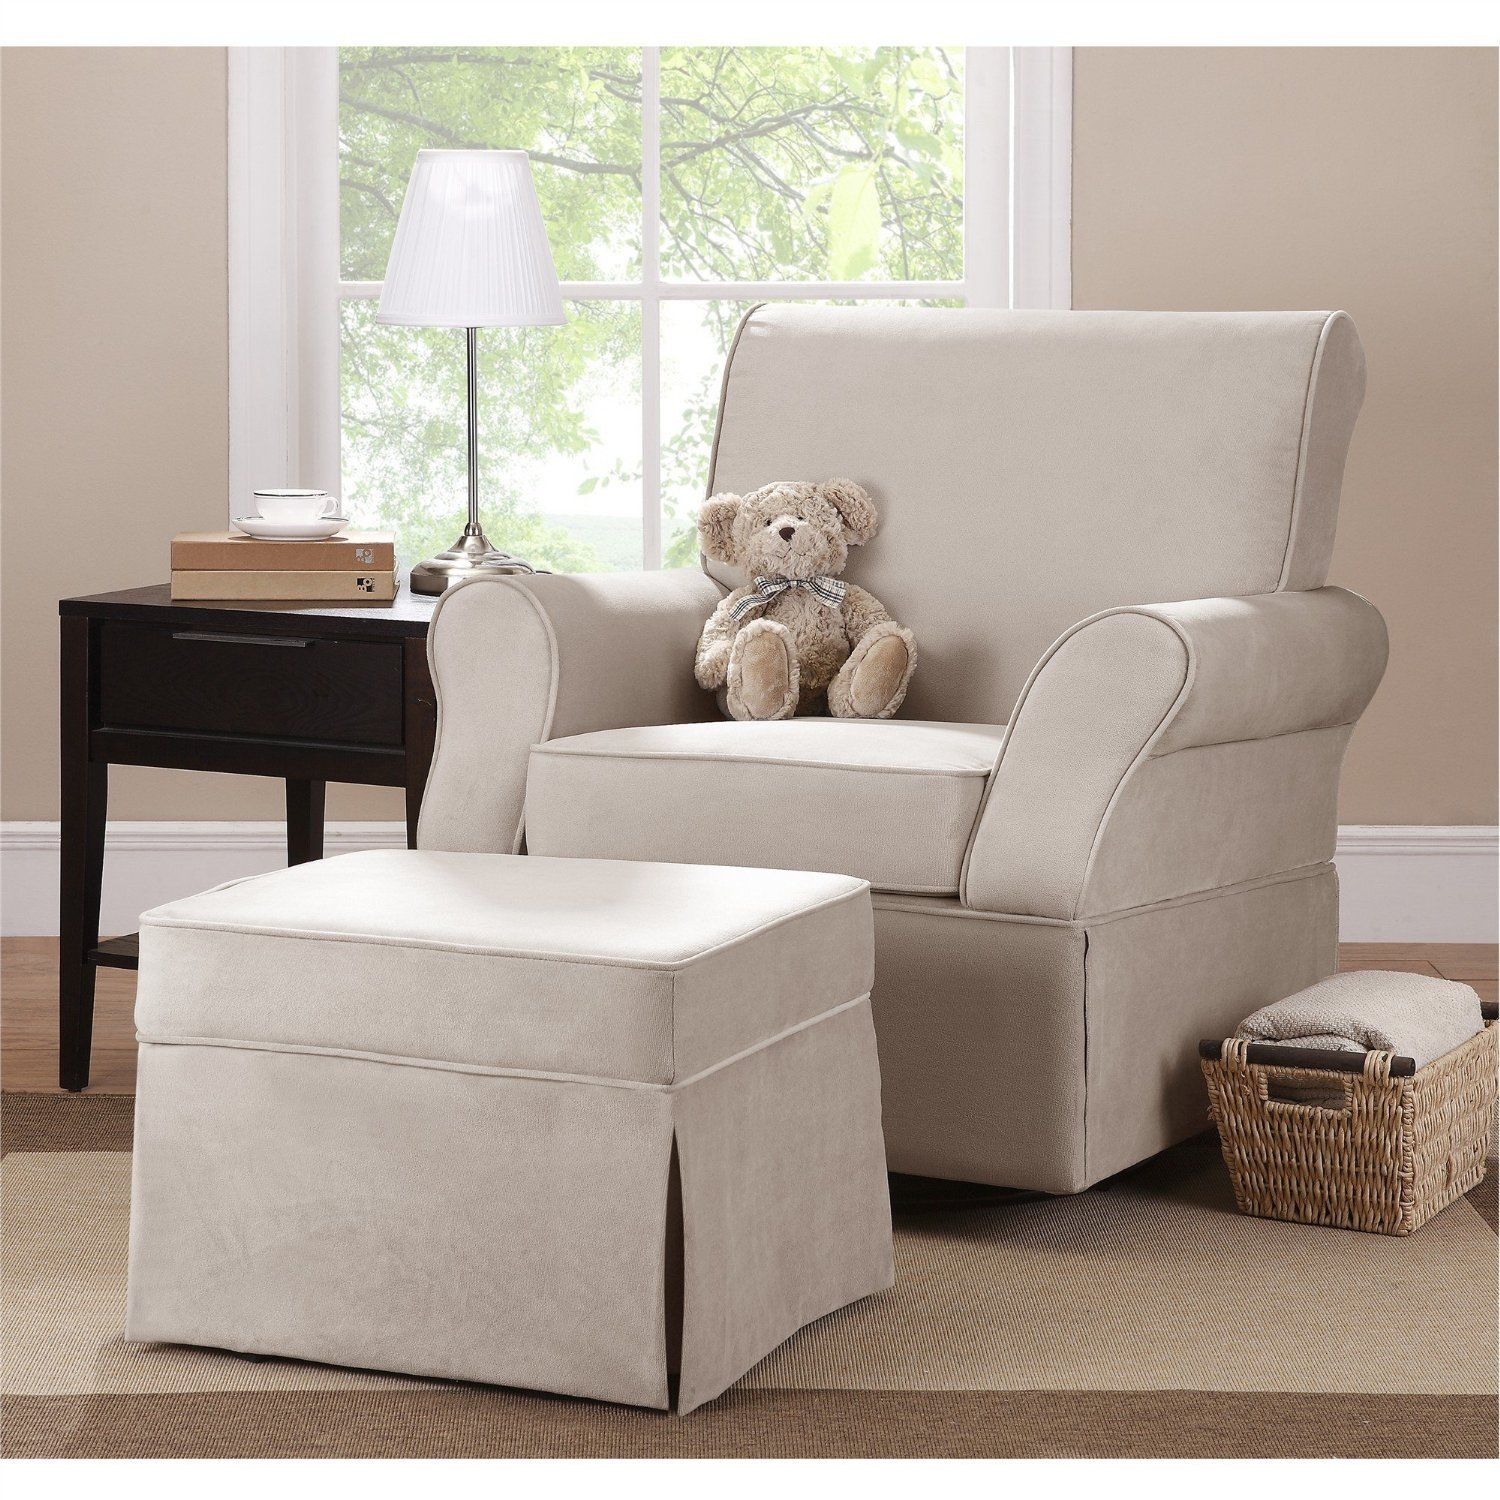 Appealing fabric upholstered glider rocker with armchairs and wooden laminate floor for living room